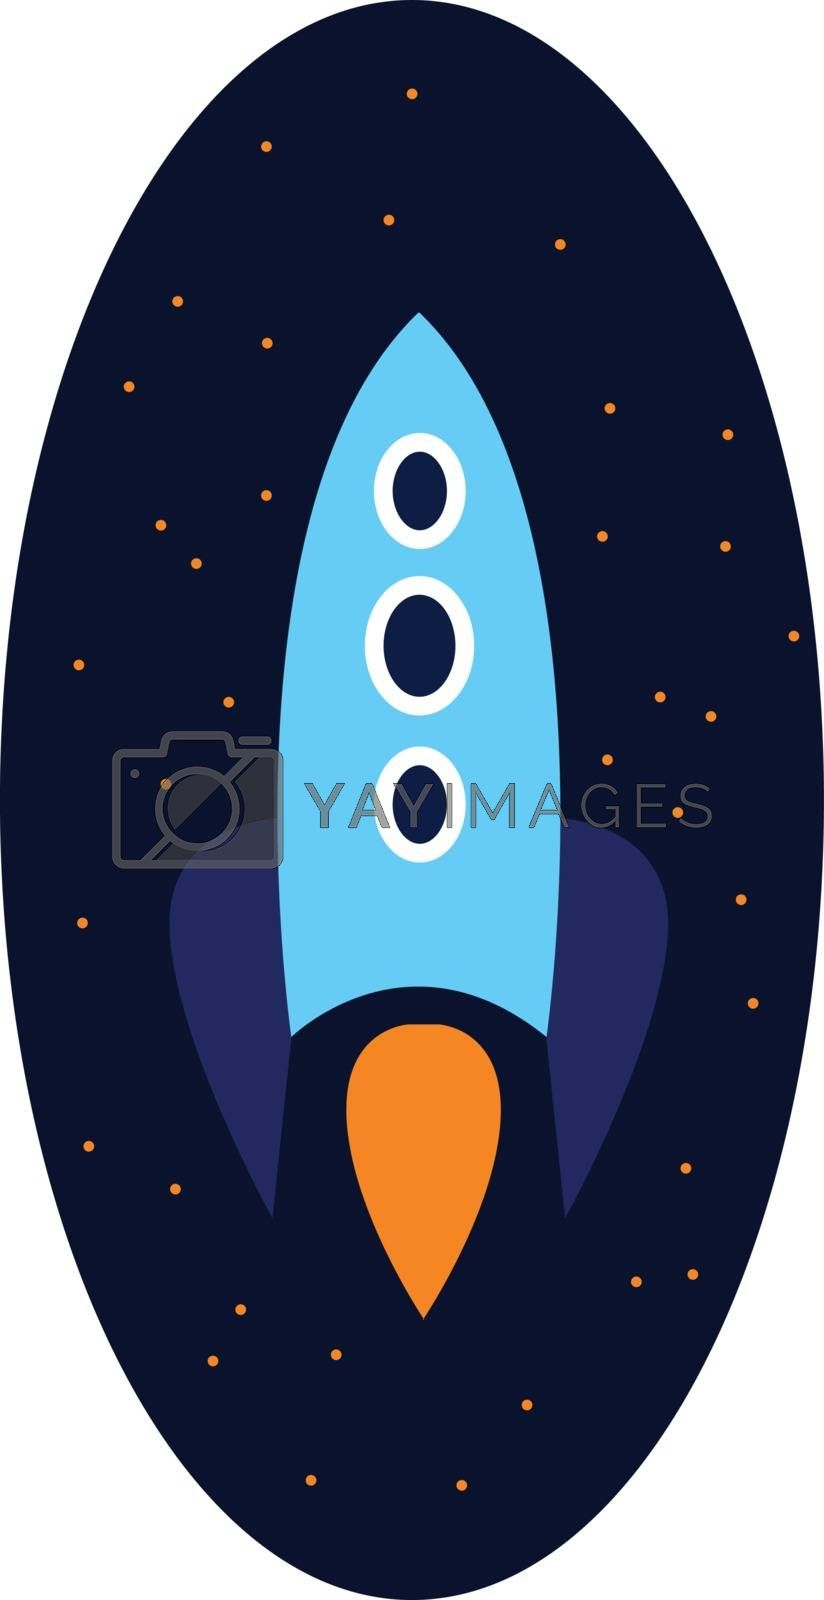 Royalty free image of Clipart of a rocket over dark-blue background vector or color il by Morphart